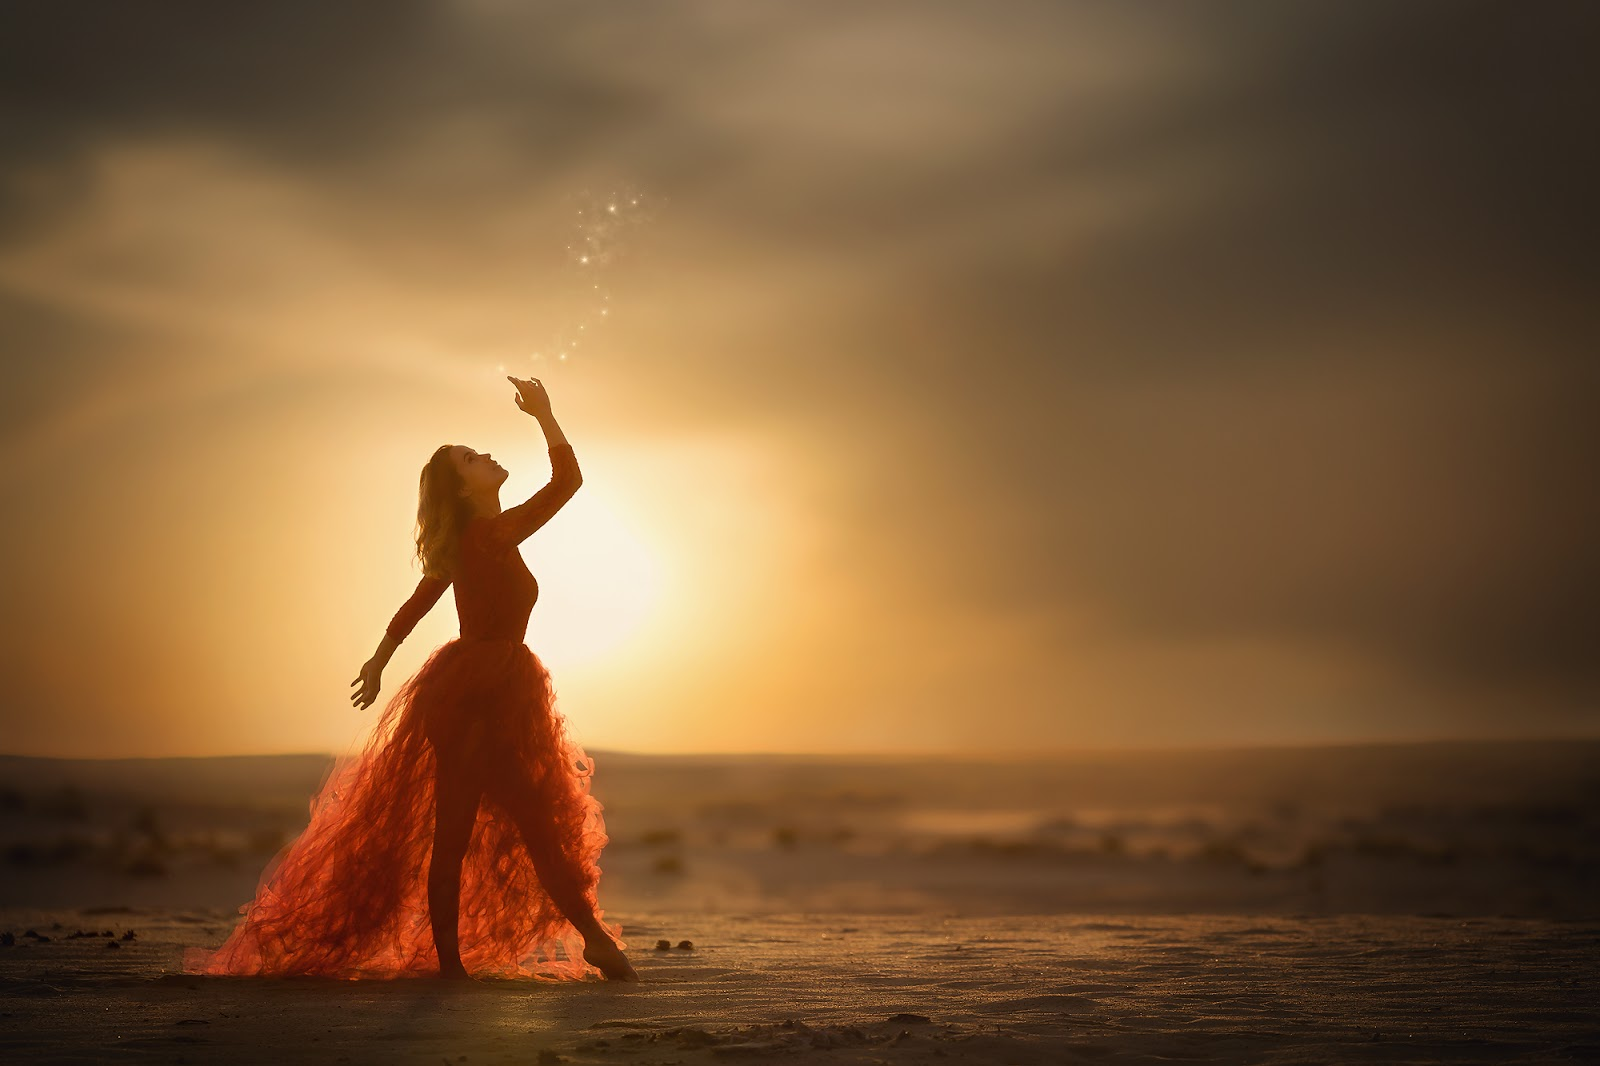 Dreamy canon image of a woman dressed up like a fairy in a red dress playing with magic fire flies in the desert during sunset by Willie Kers.